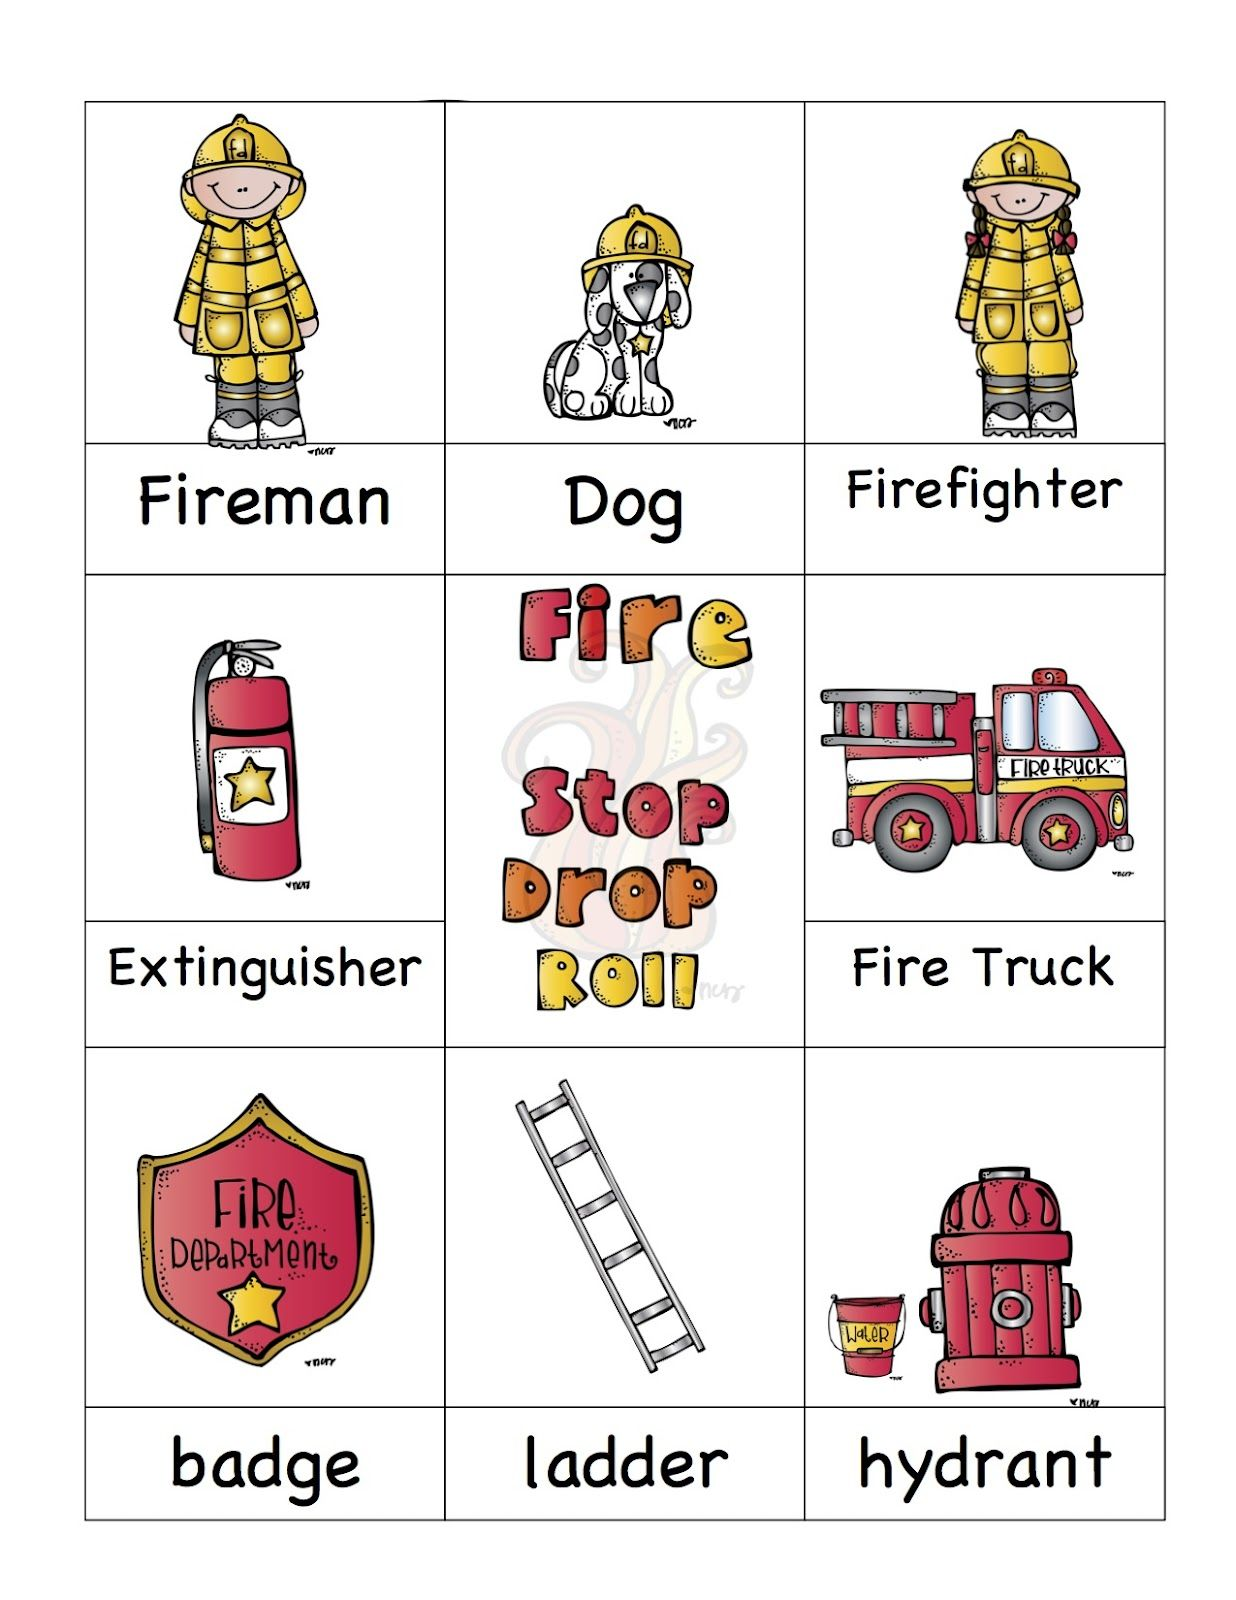 fire safety printable also has great halloween stuff up too